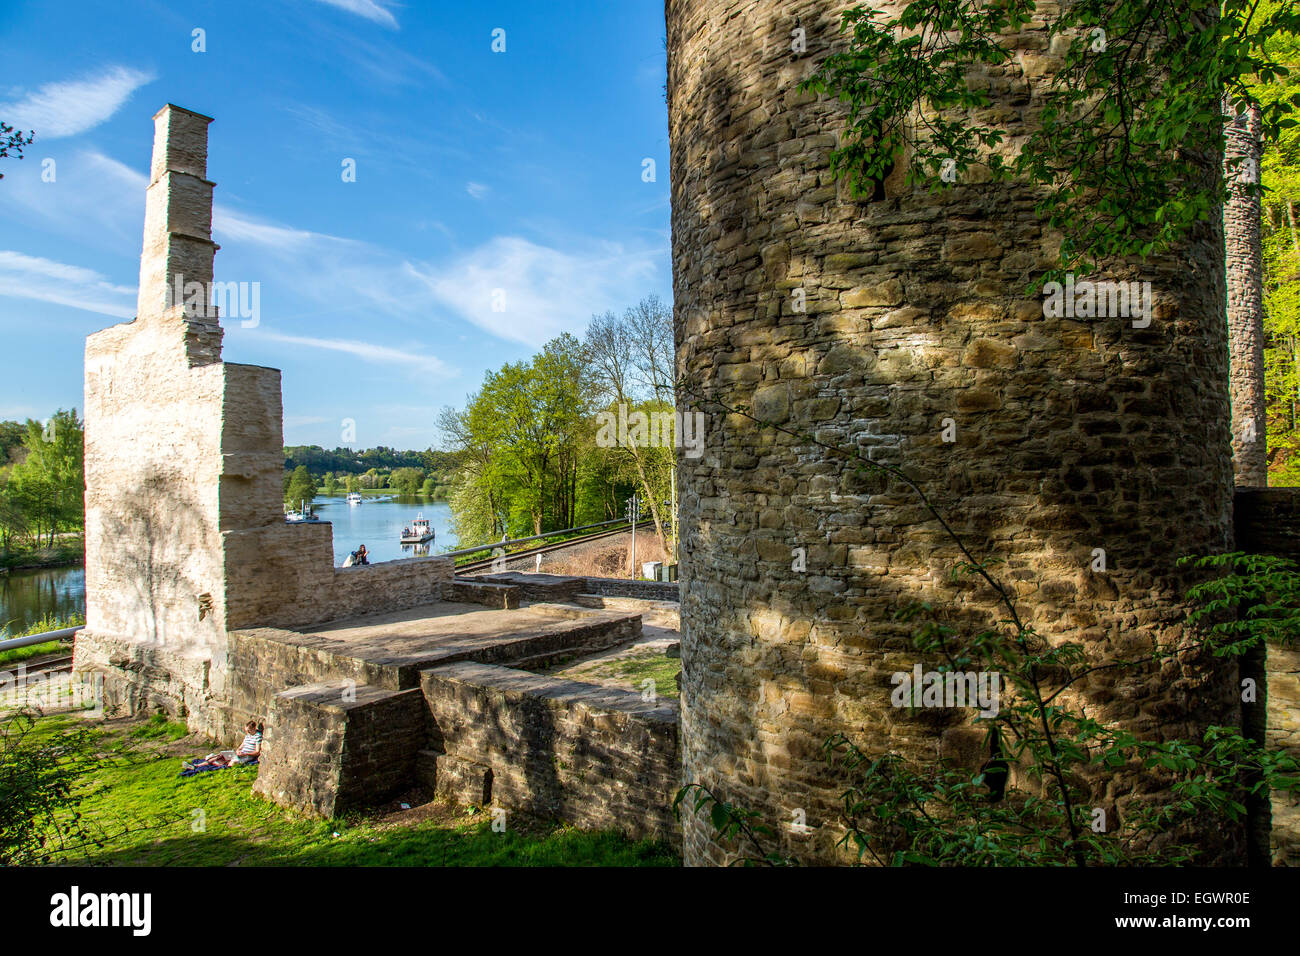 River Ruhr, ruin of Hardenstein castle, Witten, Germany,  bike and passenger river ferry boat, Stock Photo